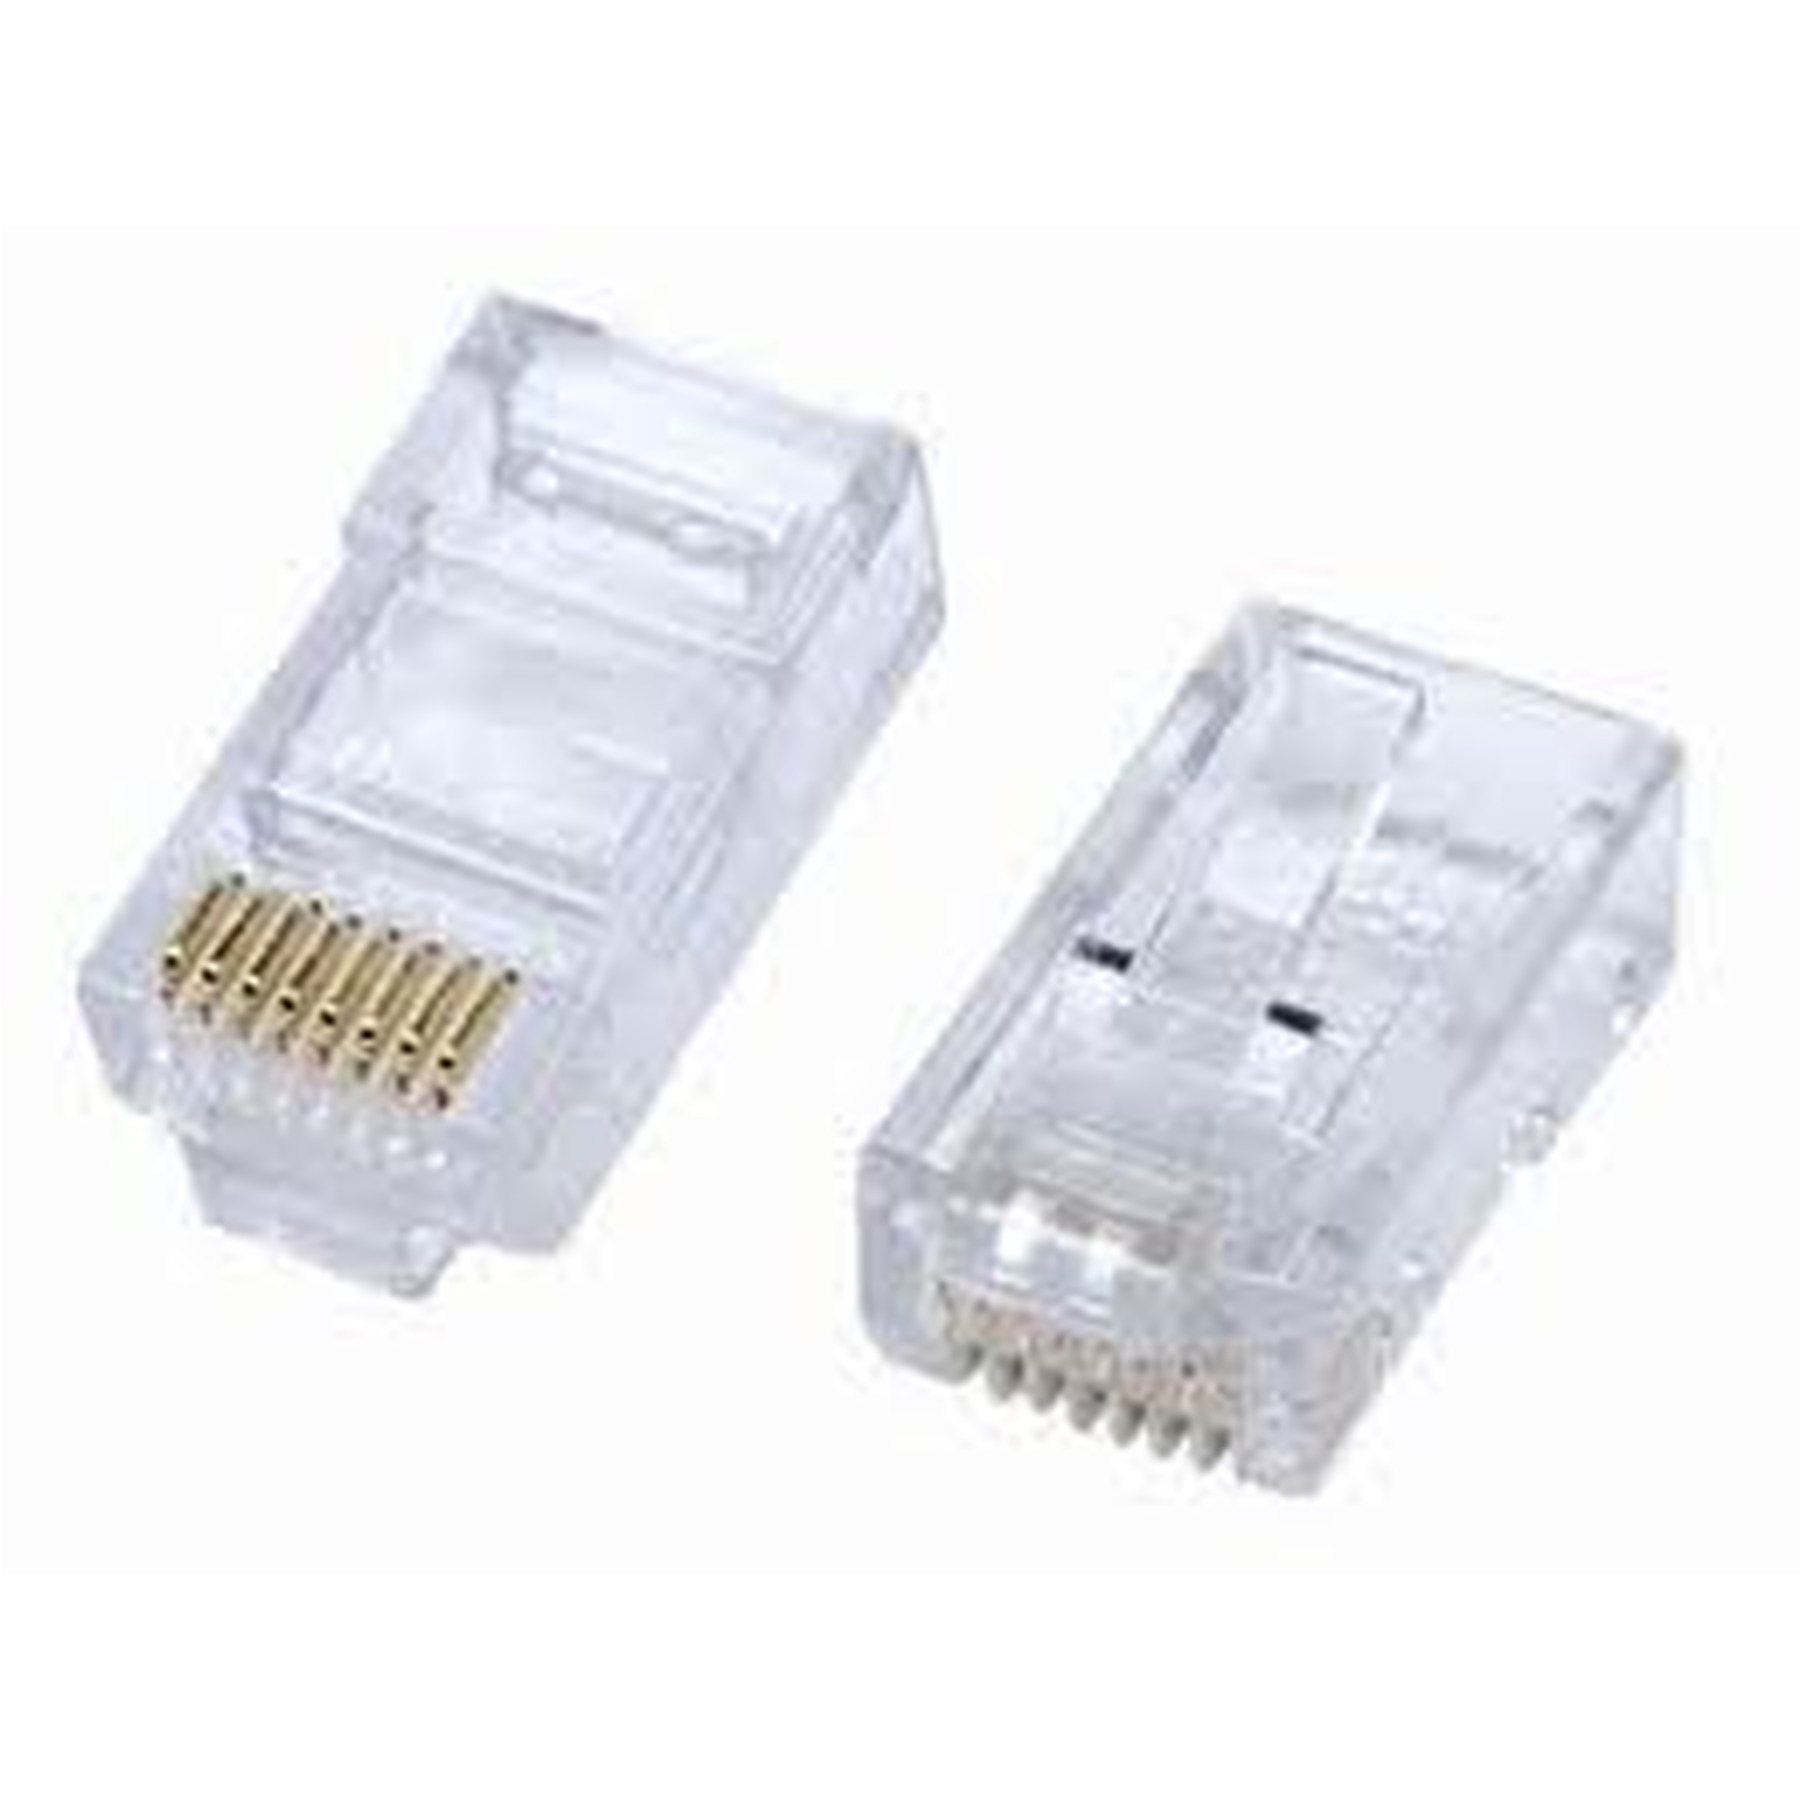 PV-RJ45CAT5Gold-25 Product Zoom